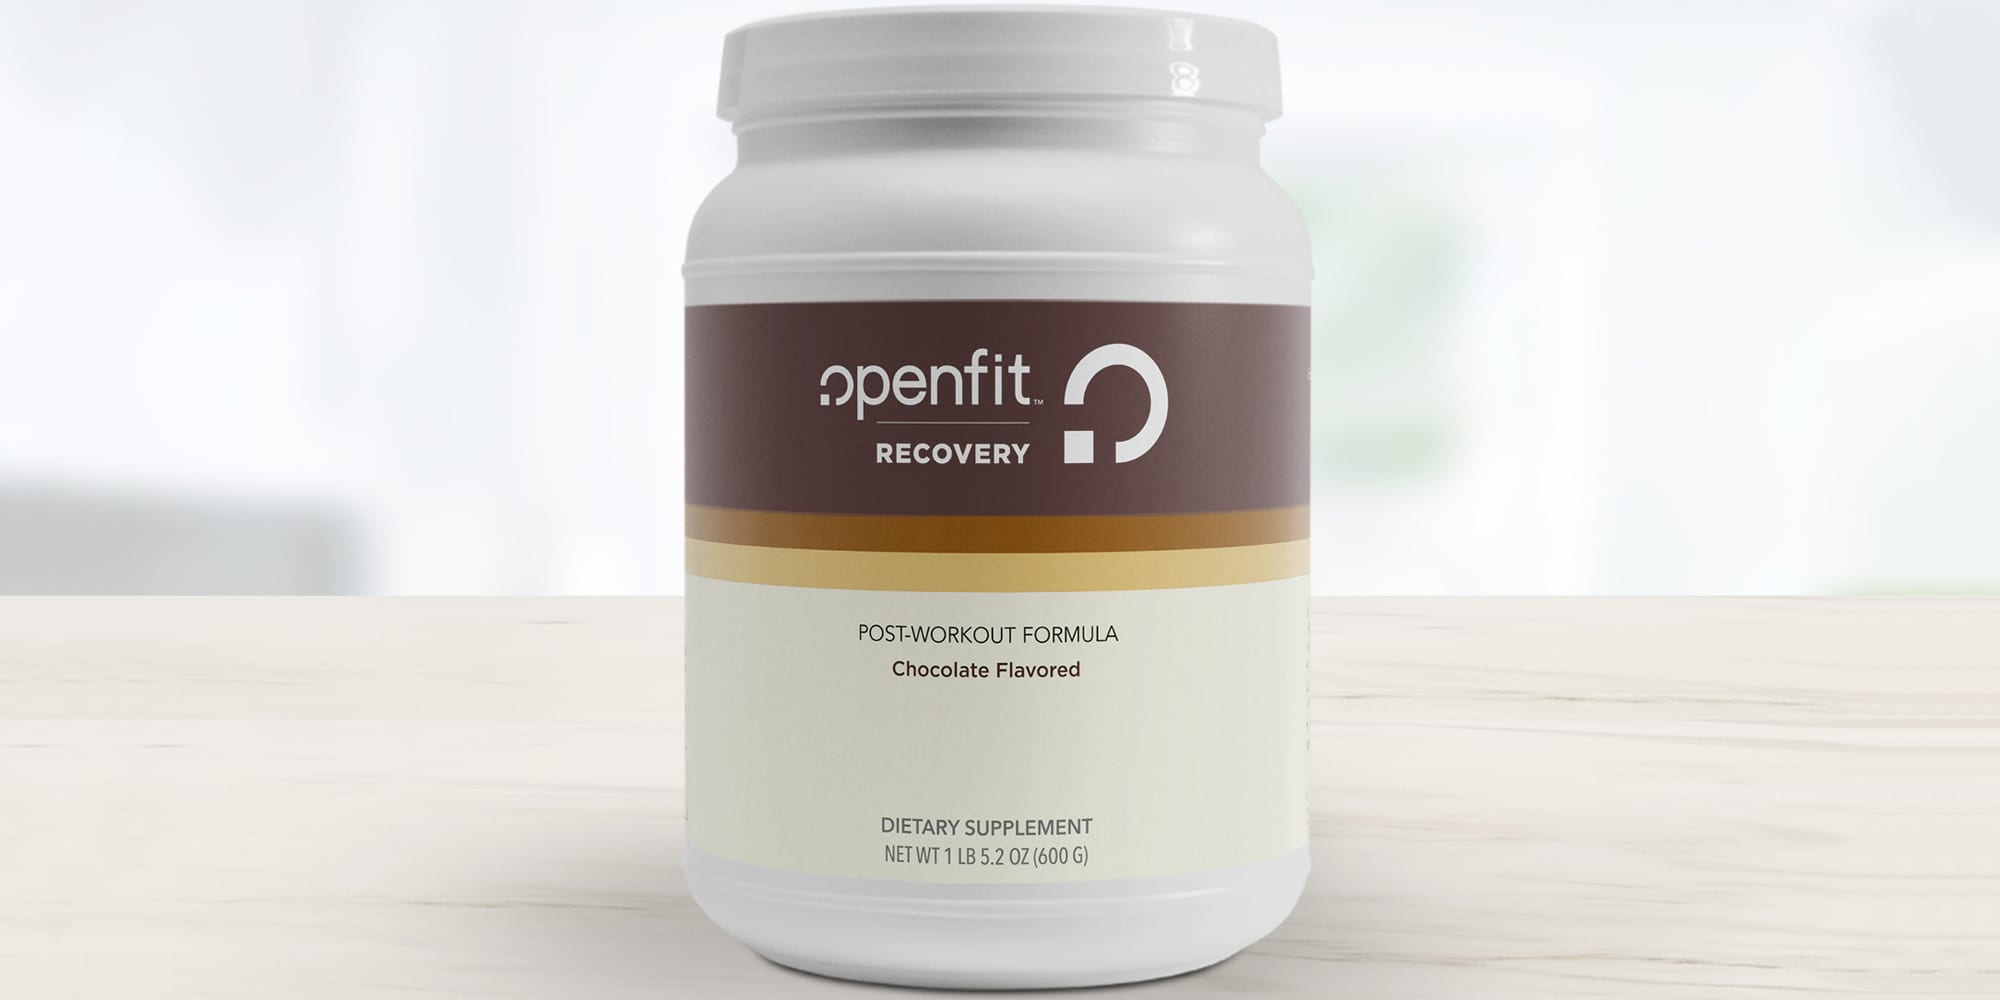 Announcing Openfit Recovery Post-Workout Formula: Repair, Rebuild, Repeat